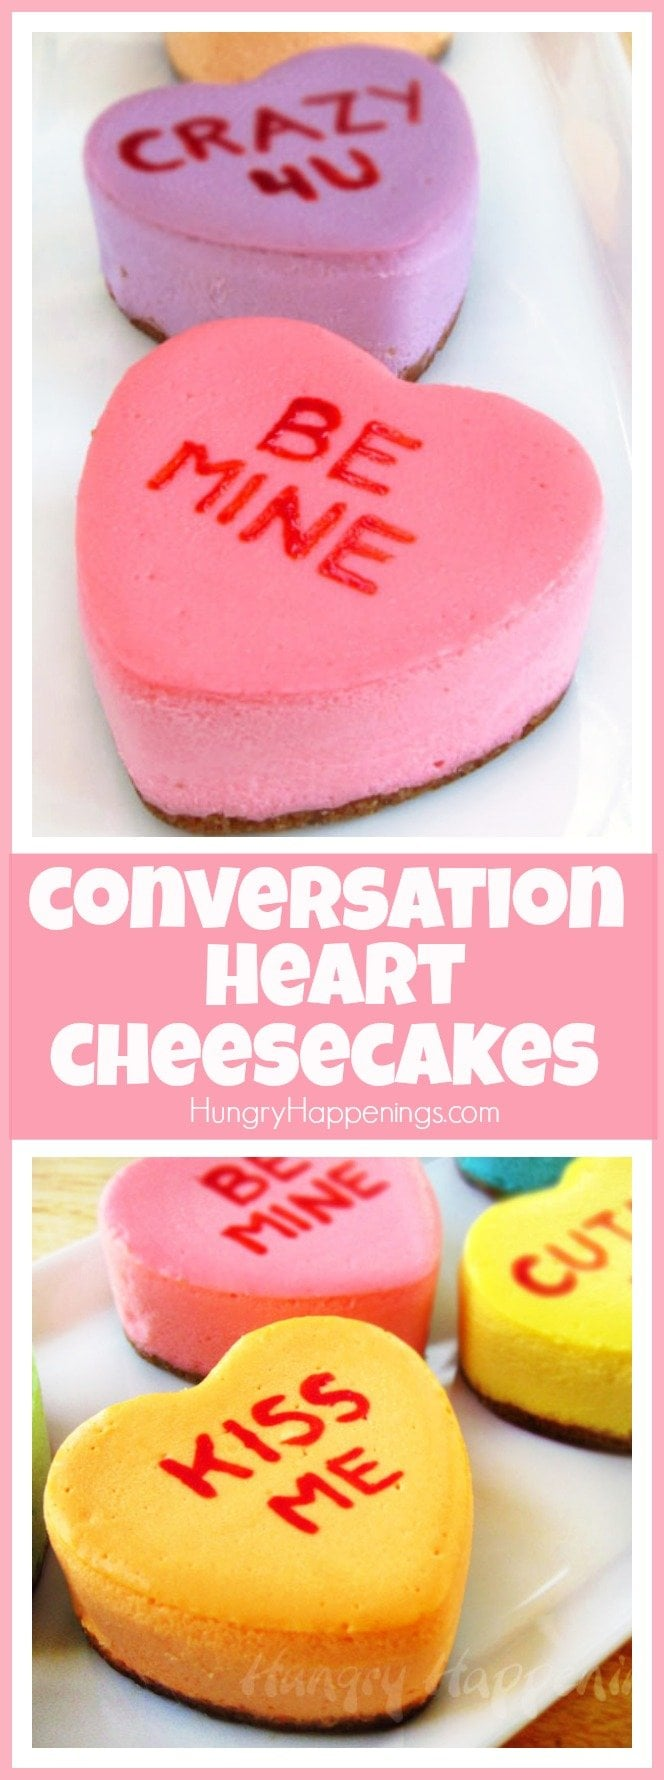 Personalize your own brightly colored Conversation Heart Cheesecakes with messages for your sweetheart. Each lusciously cream dessert with surely win his/her heart.